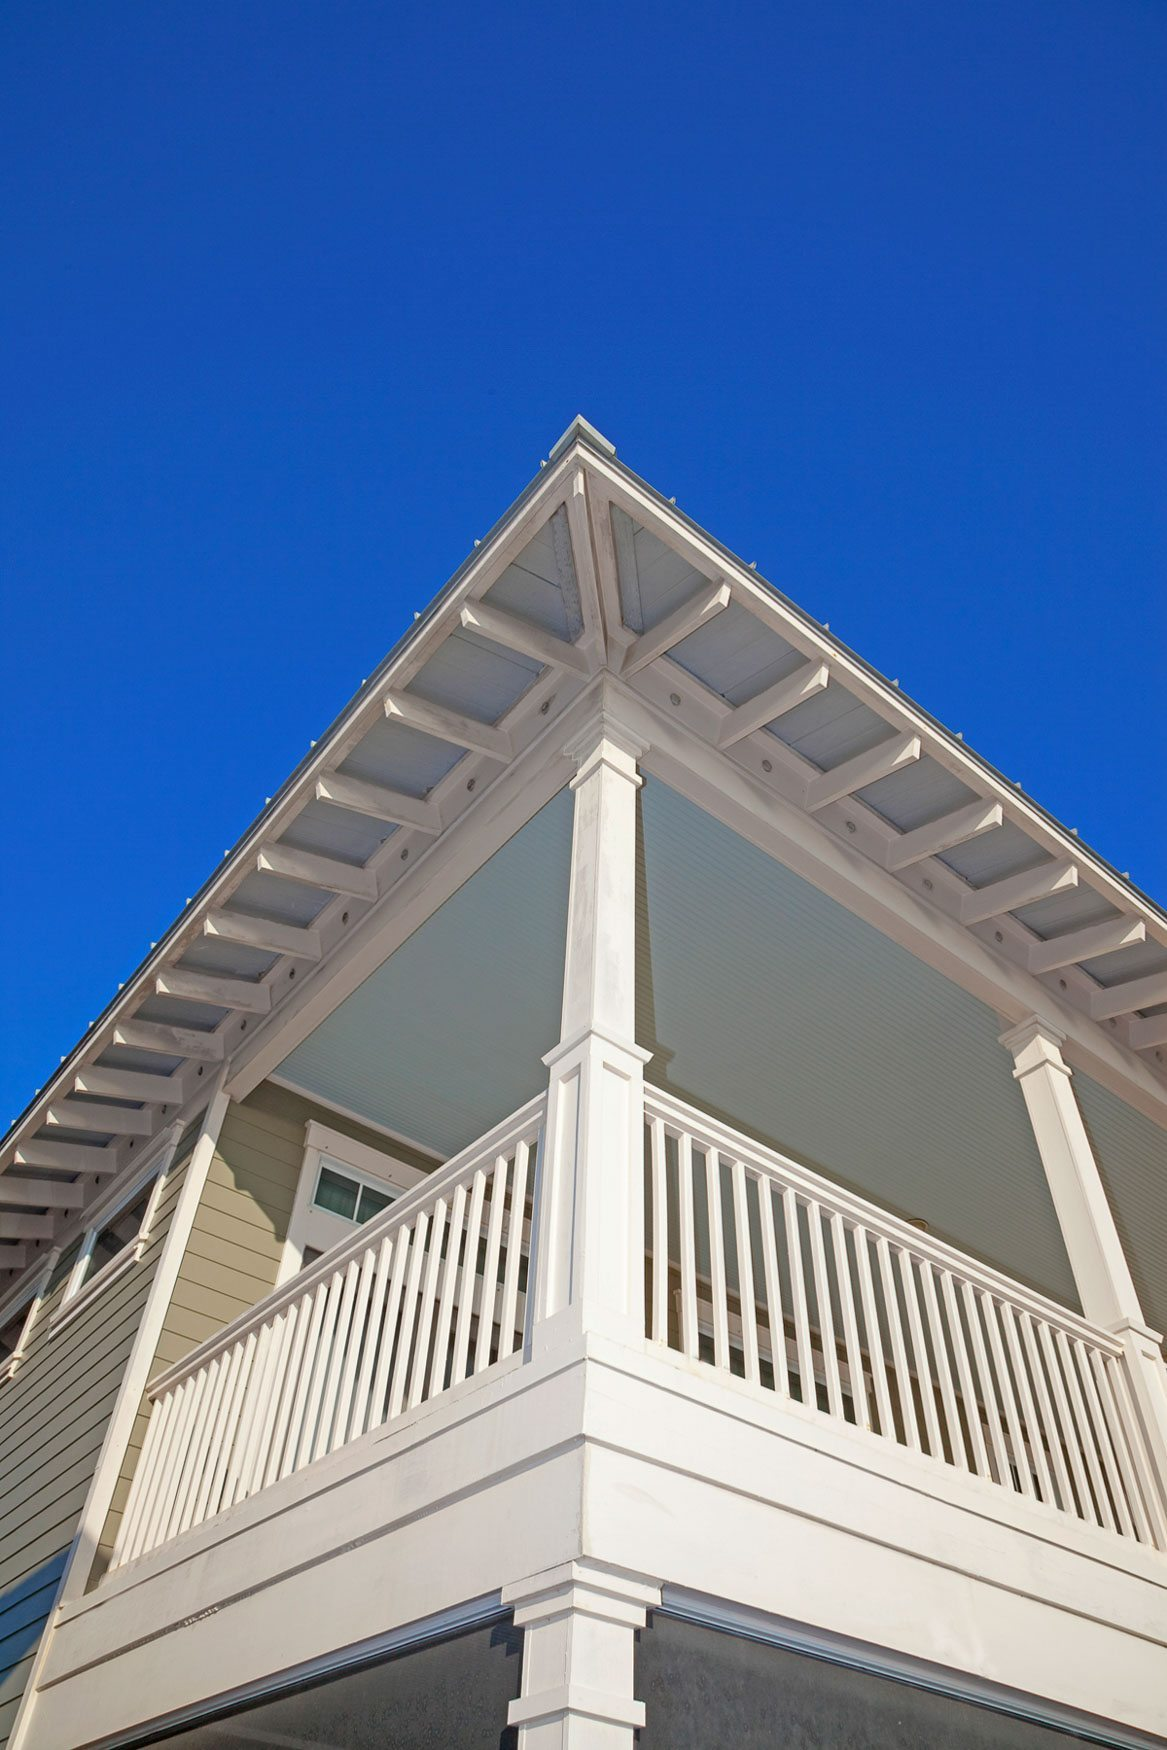 Roof detail of new home in Old Florida Beach on 30A.